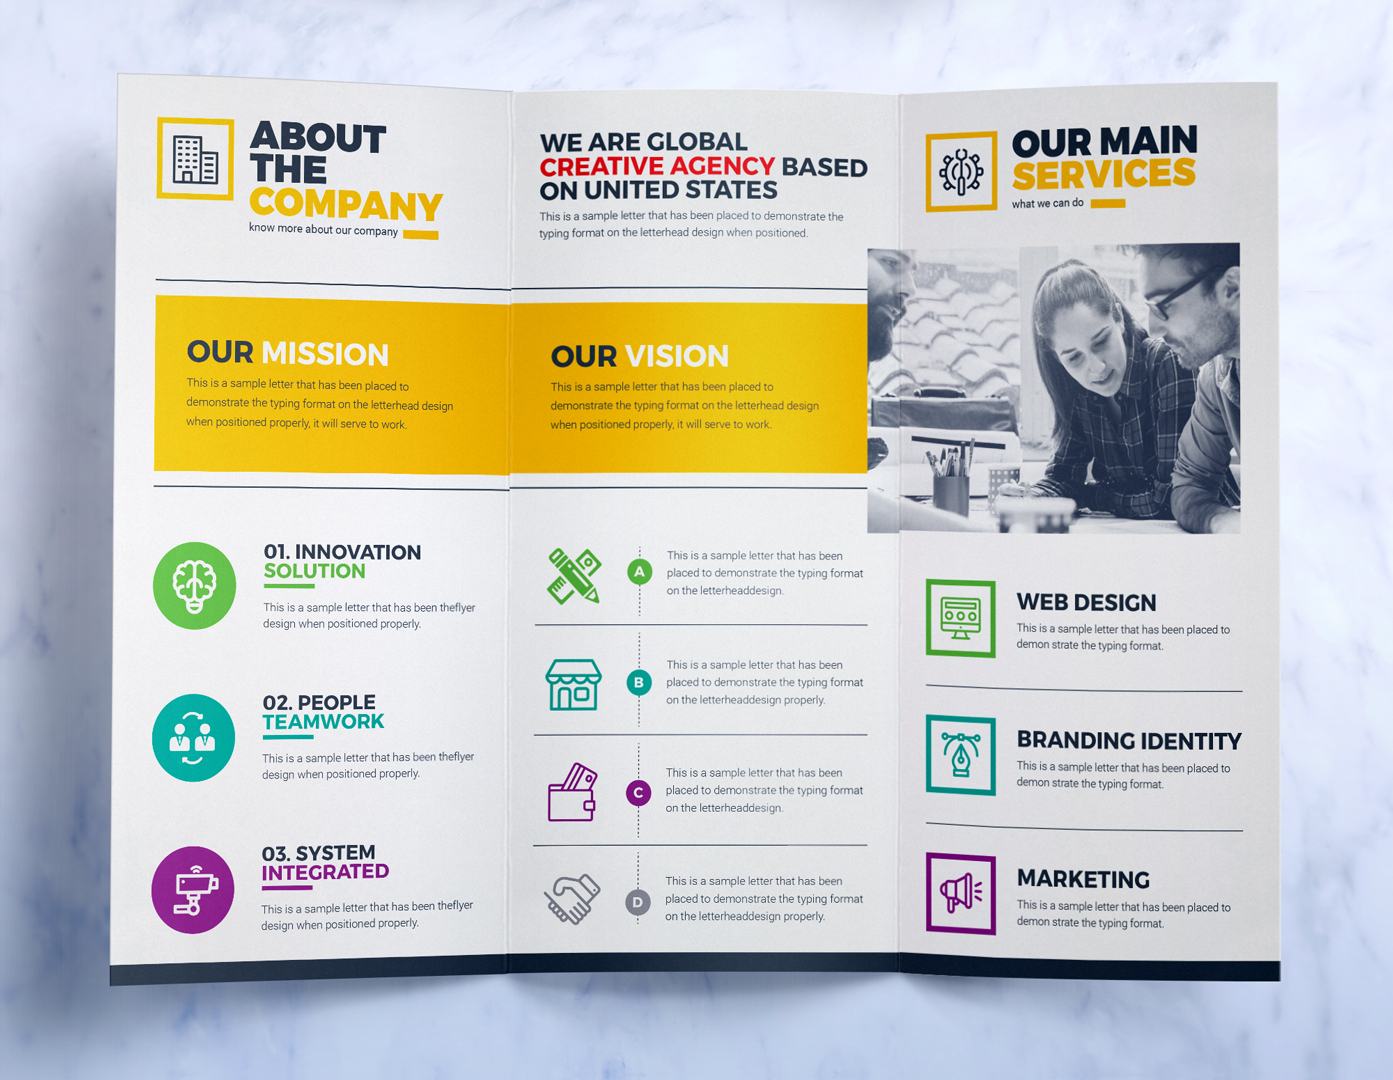 TriFold Brochure Design Template Square And Tall Version - Brochure design templates